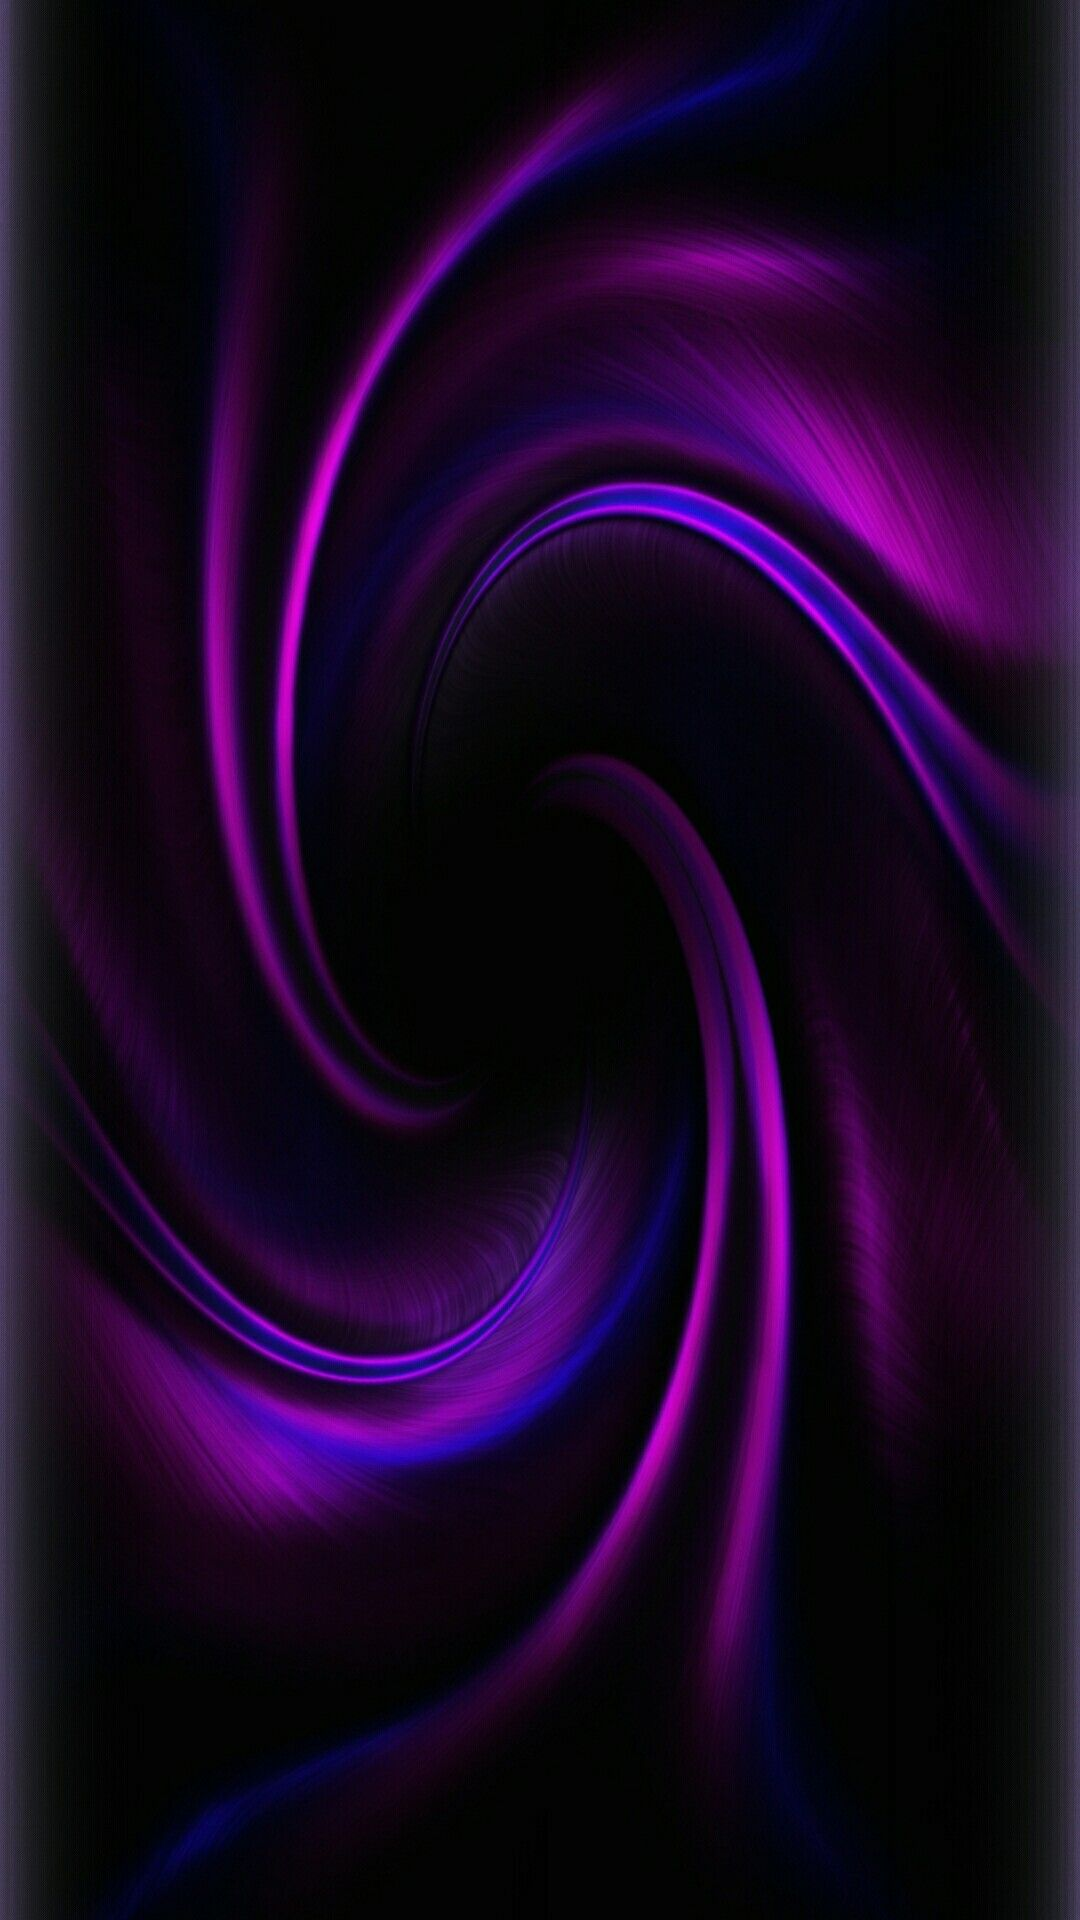 Heavy Colorful Http Hanfsamenkaufenlegal Com Purple Wallpaper Samsung Wallpaper Screen Savers Wallpapers